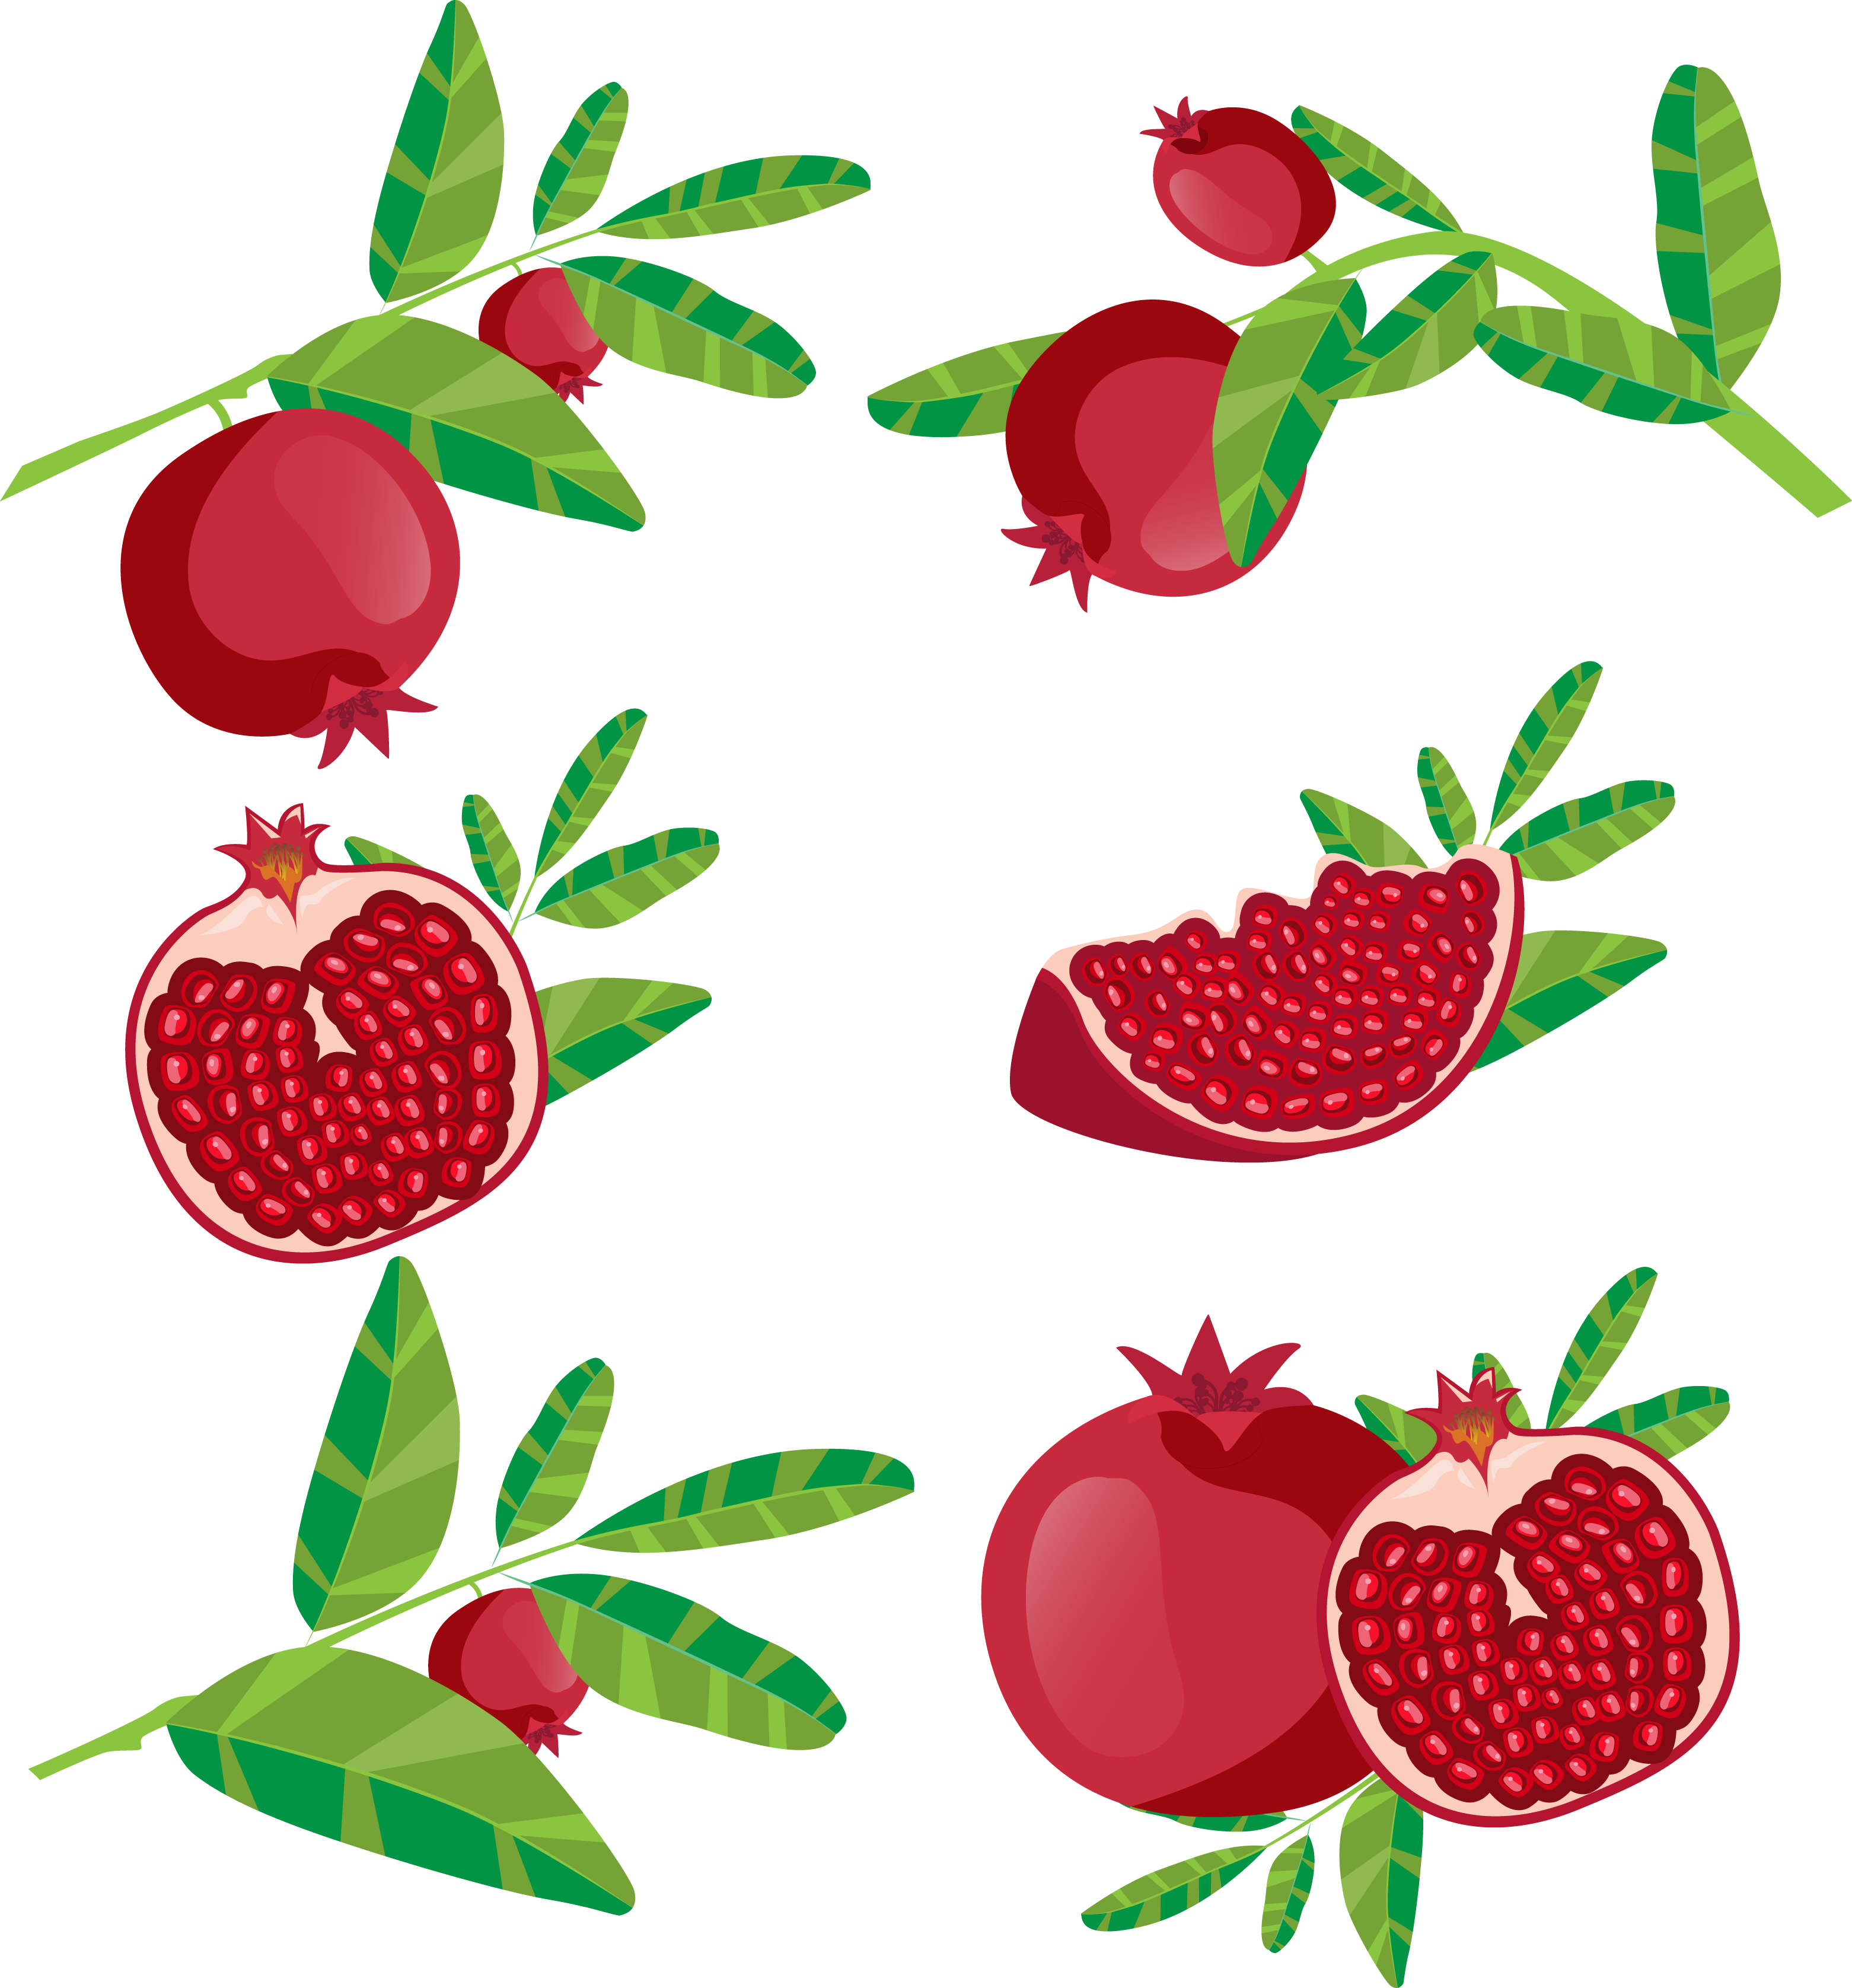 Juice fruit icon red. Pomegranate clipart branch